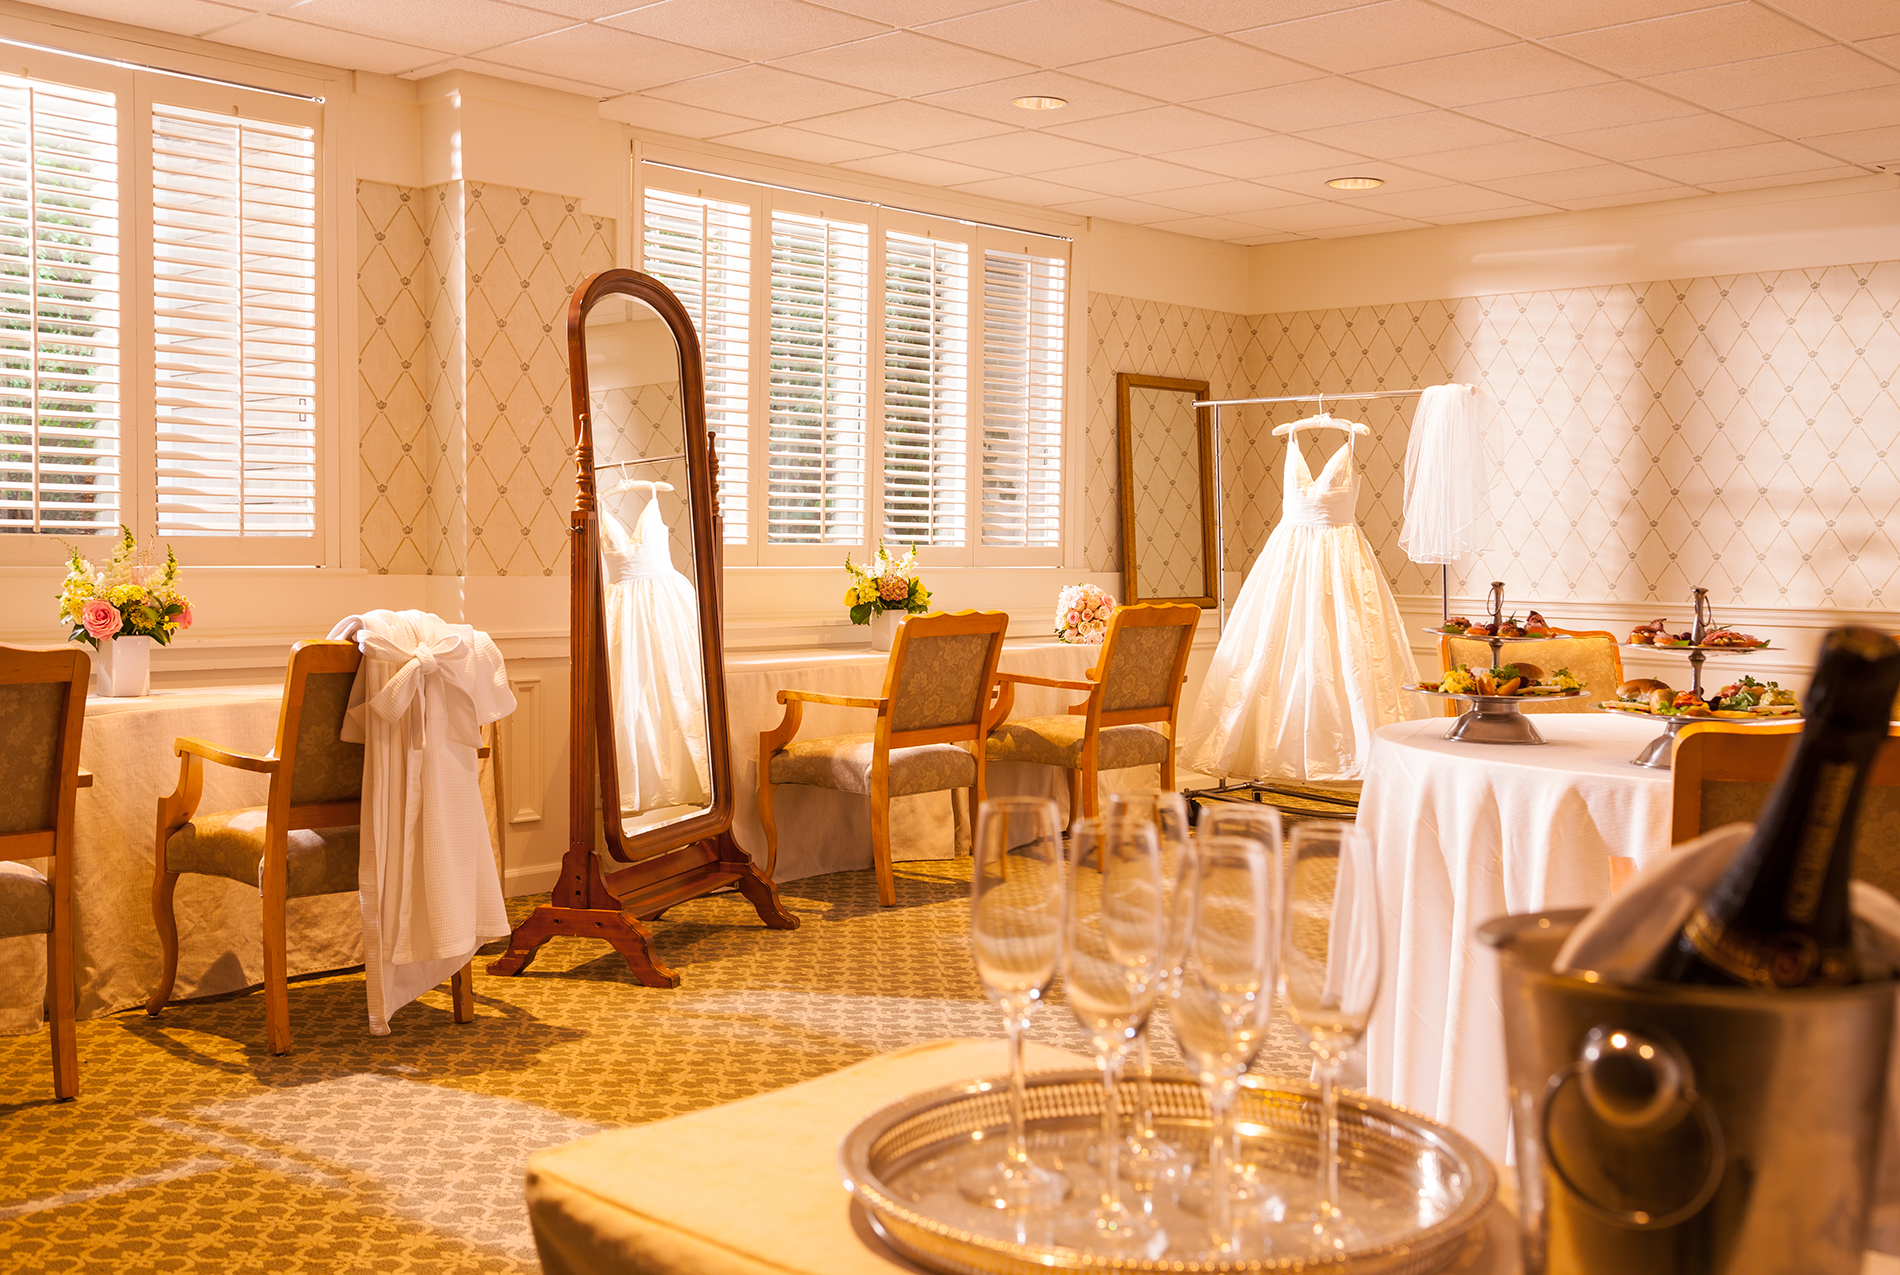 Wedding dress hanging in a room.